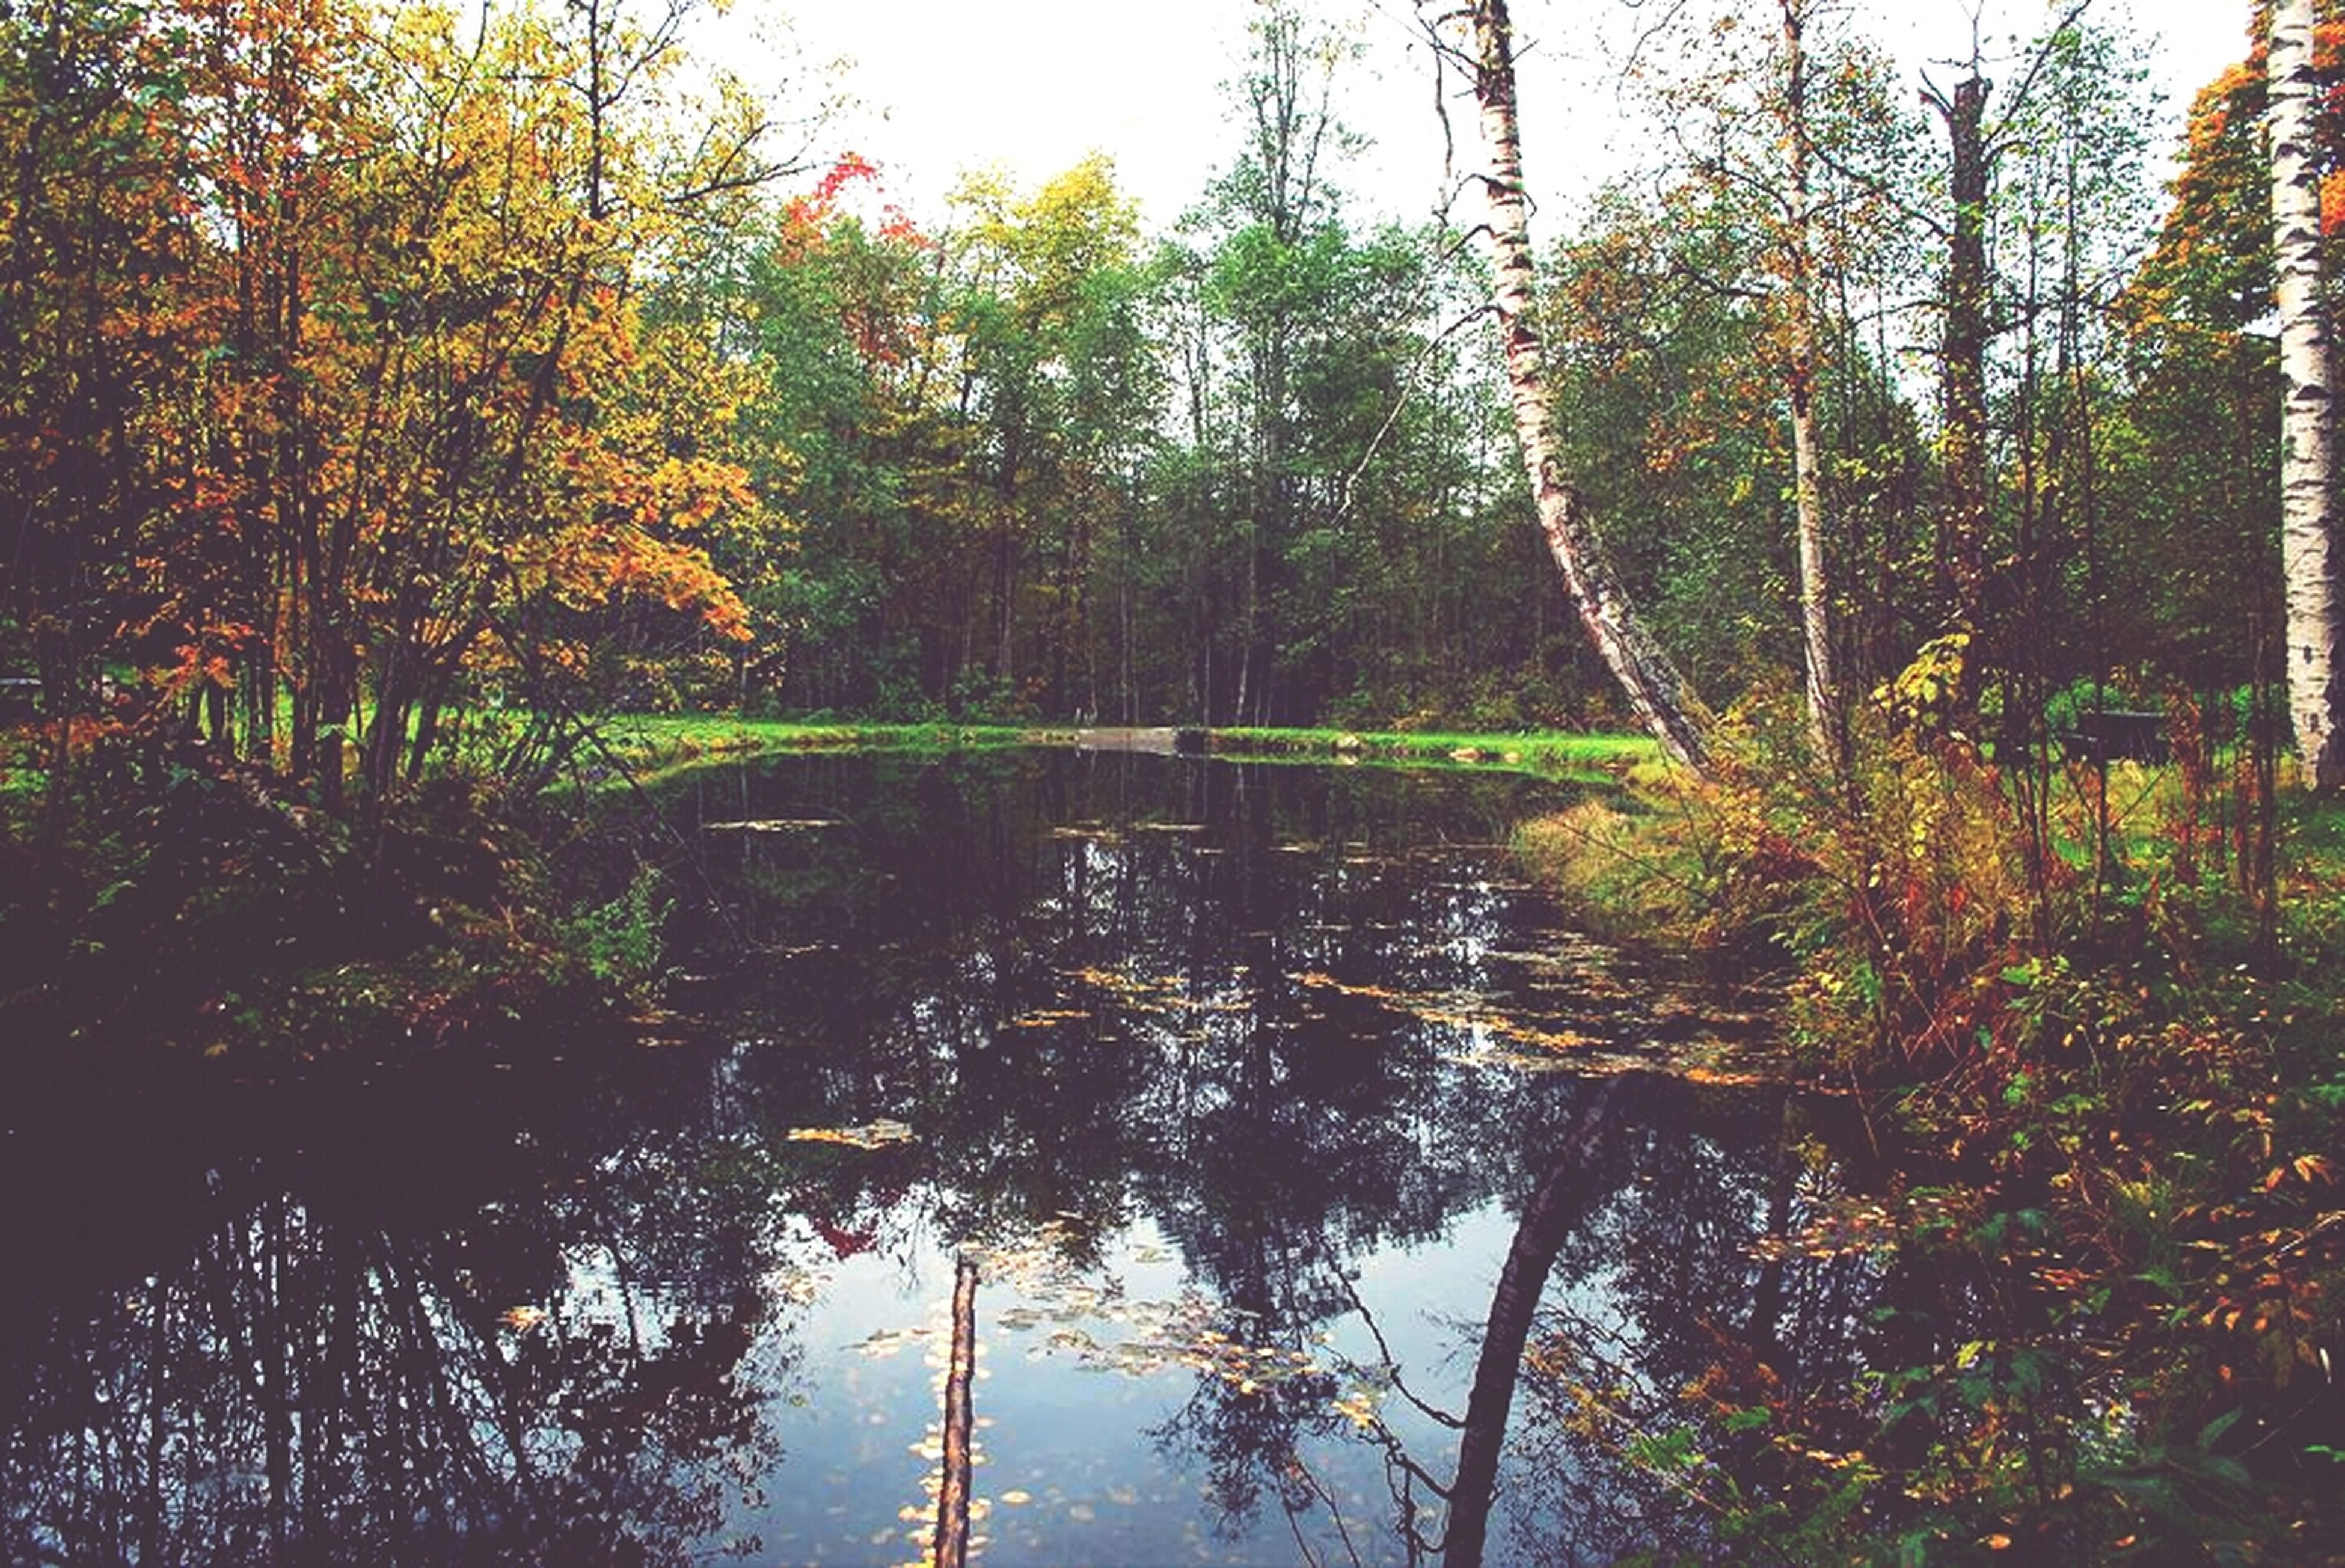 tree, water, tranquility, reflection, tranquil scene, scenics, beauty in nature, lake, nature, growth, forest, branch, idyllic, waterfront, non-urban scene, river, sky, tree trunk, outdoors, autumn